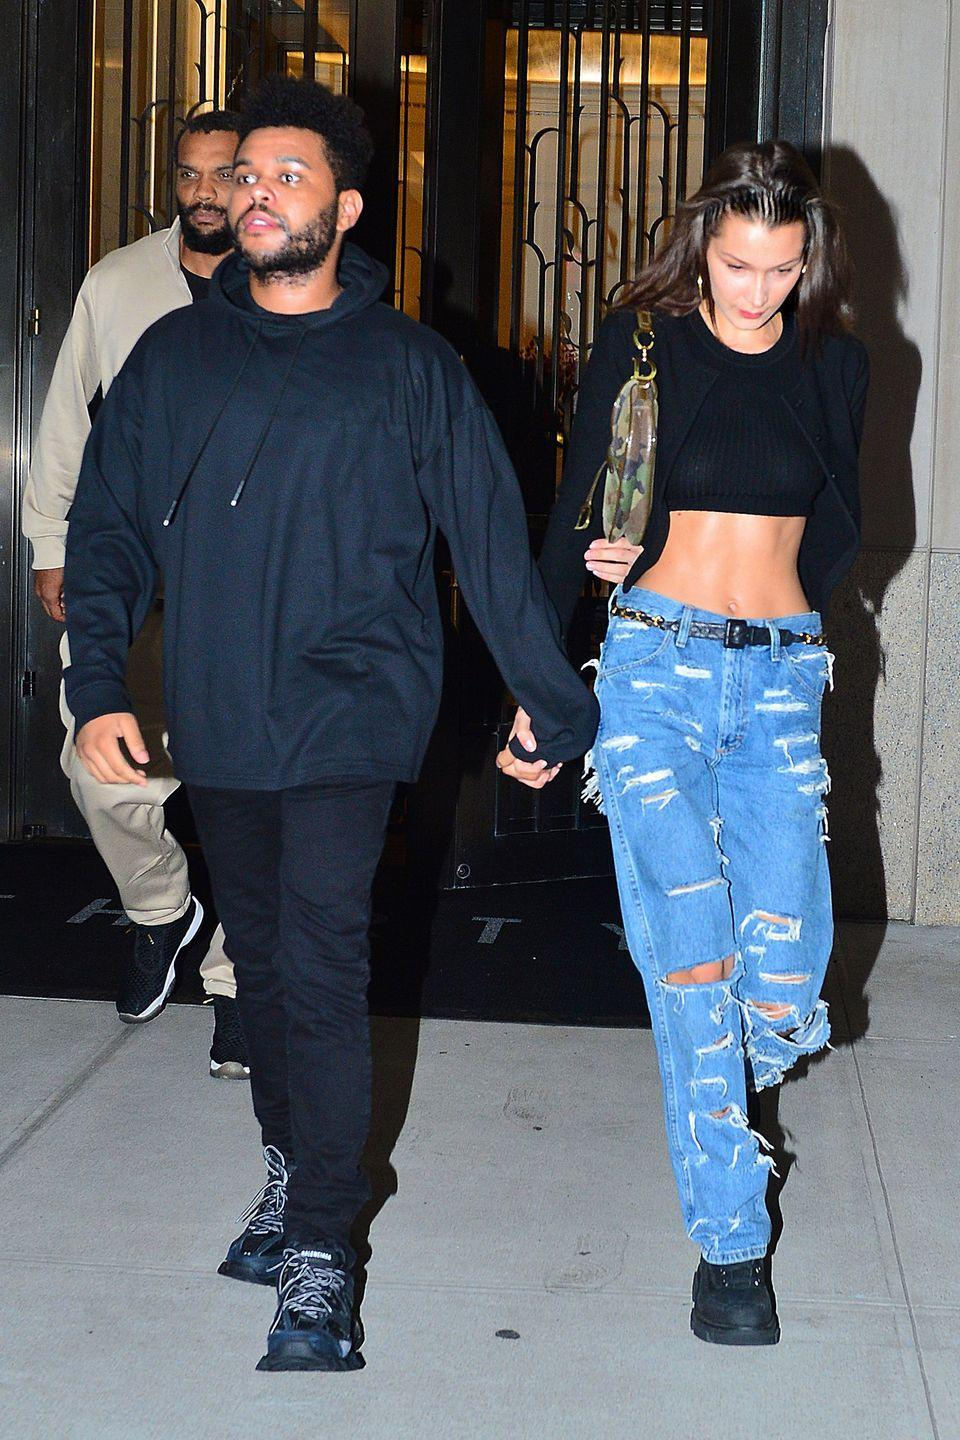 """<p>In a black crop top and jacket, low rise ripped jeans, black hiking boots and a camouflage <a href=""""https://www.dior.com/couture/en_us/womens-fashion/saddle-bags"""" rel=""""nofollow noopener"""" target=""""_blank"""" data-ylk=""""slk:Dior saddle bag"""" class=""""link rapid-noclick-resp"""">Dior saddle bag</a> out in NYC with The Weeknd.</p>"""